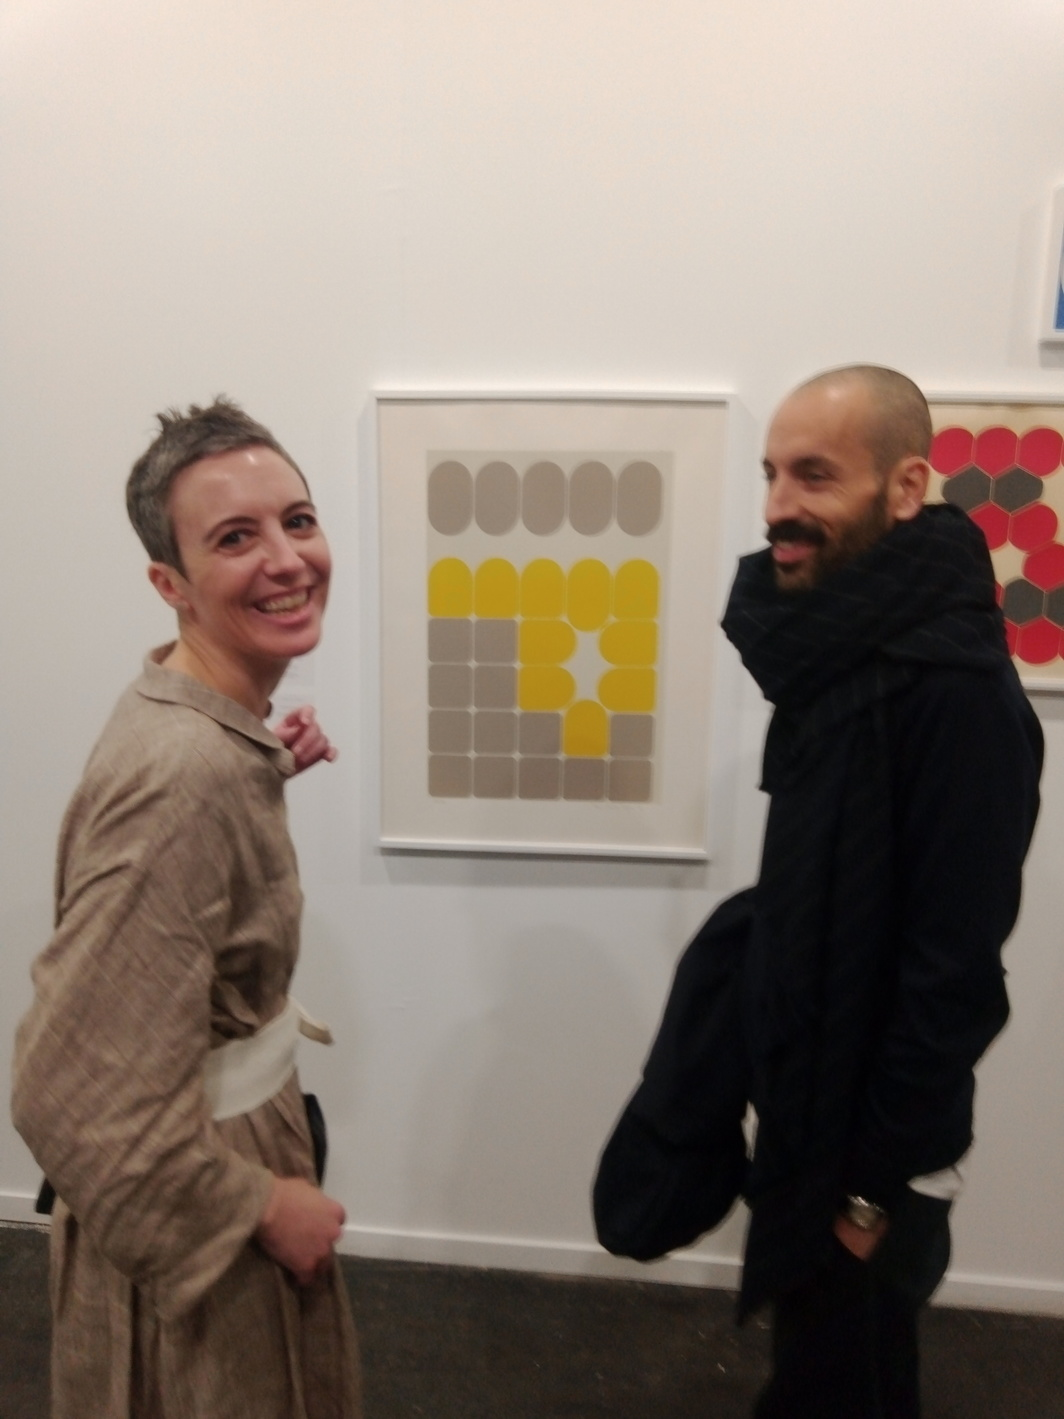 María García Yelo, from Christie's Spain, and Chisco Villar.